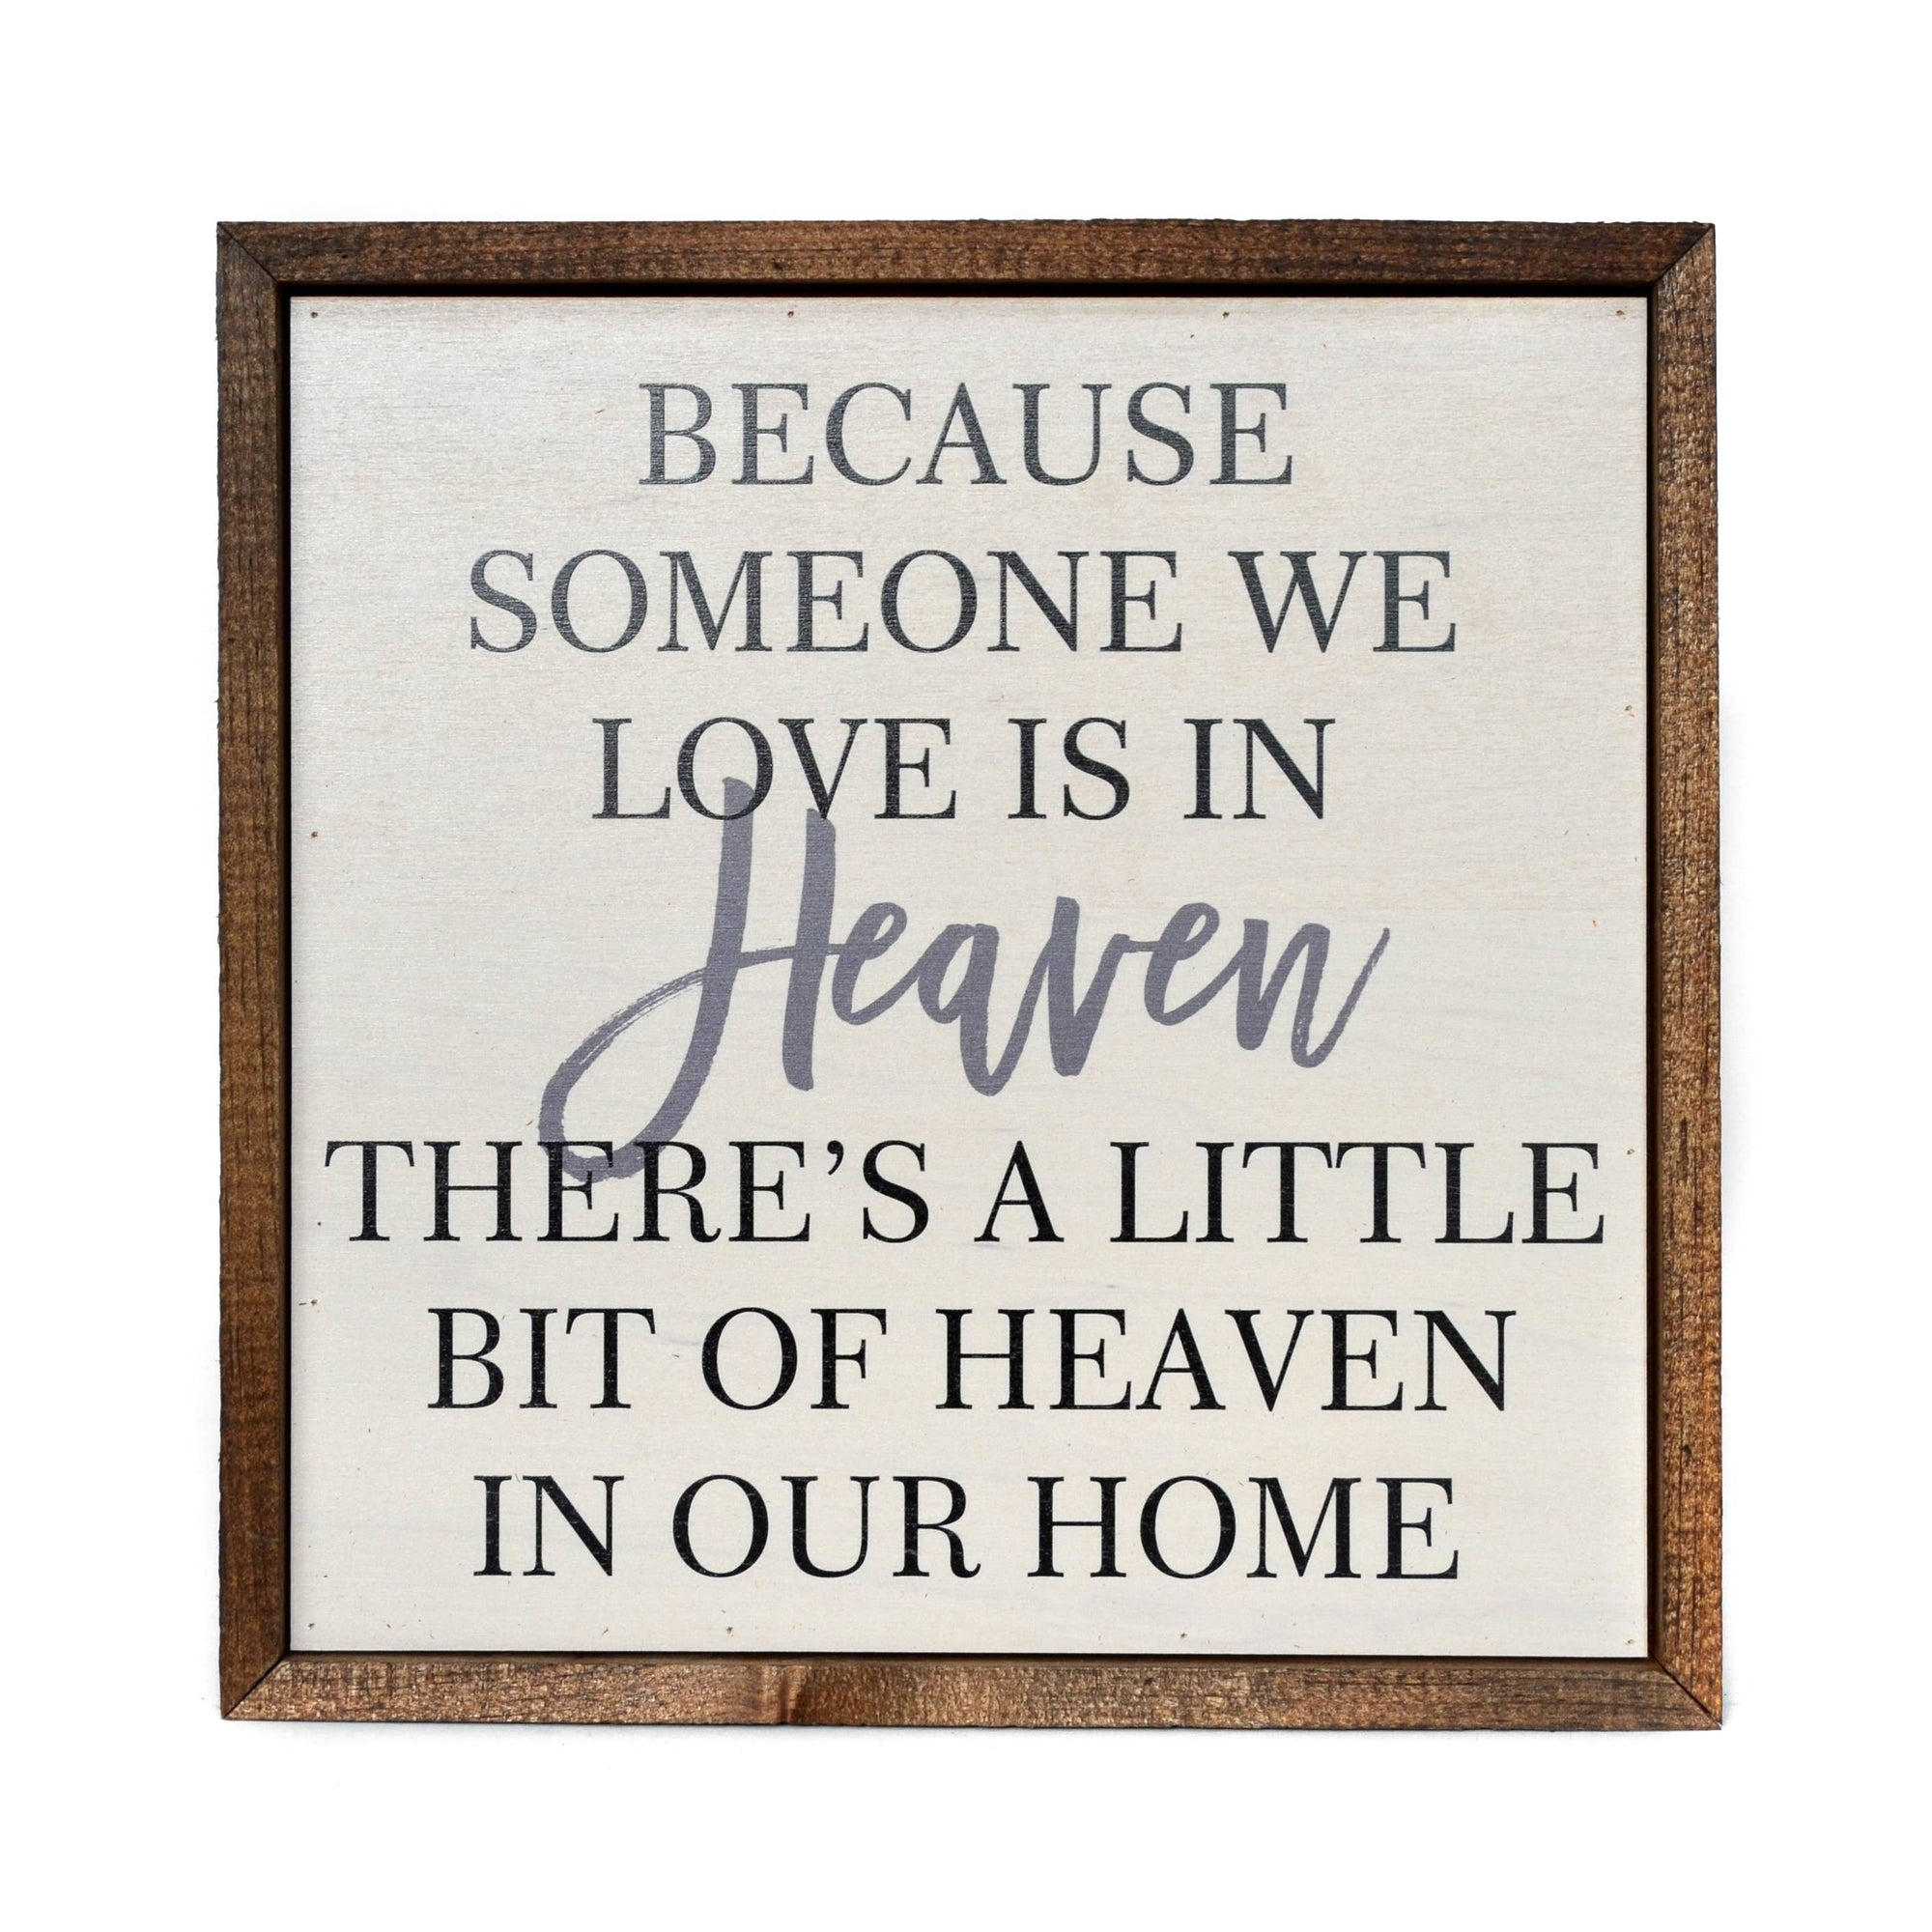 Because someone we love is in Heaven Remembrance Sign - Driftless